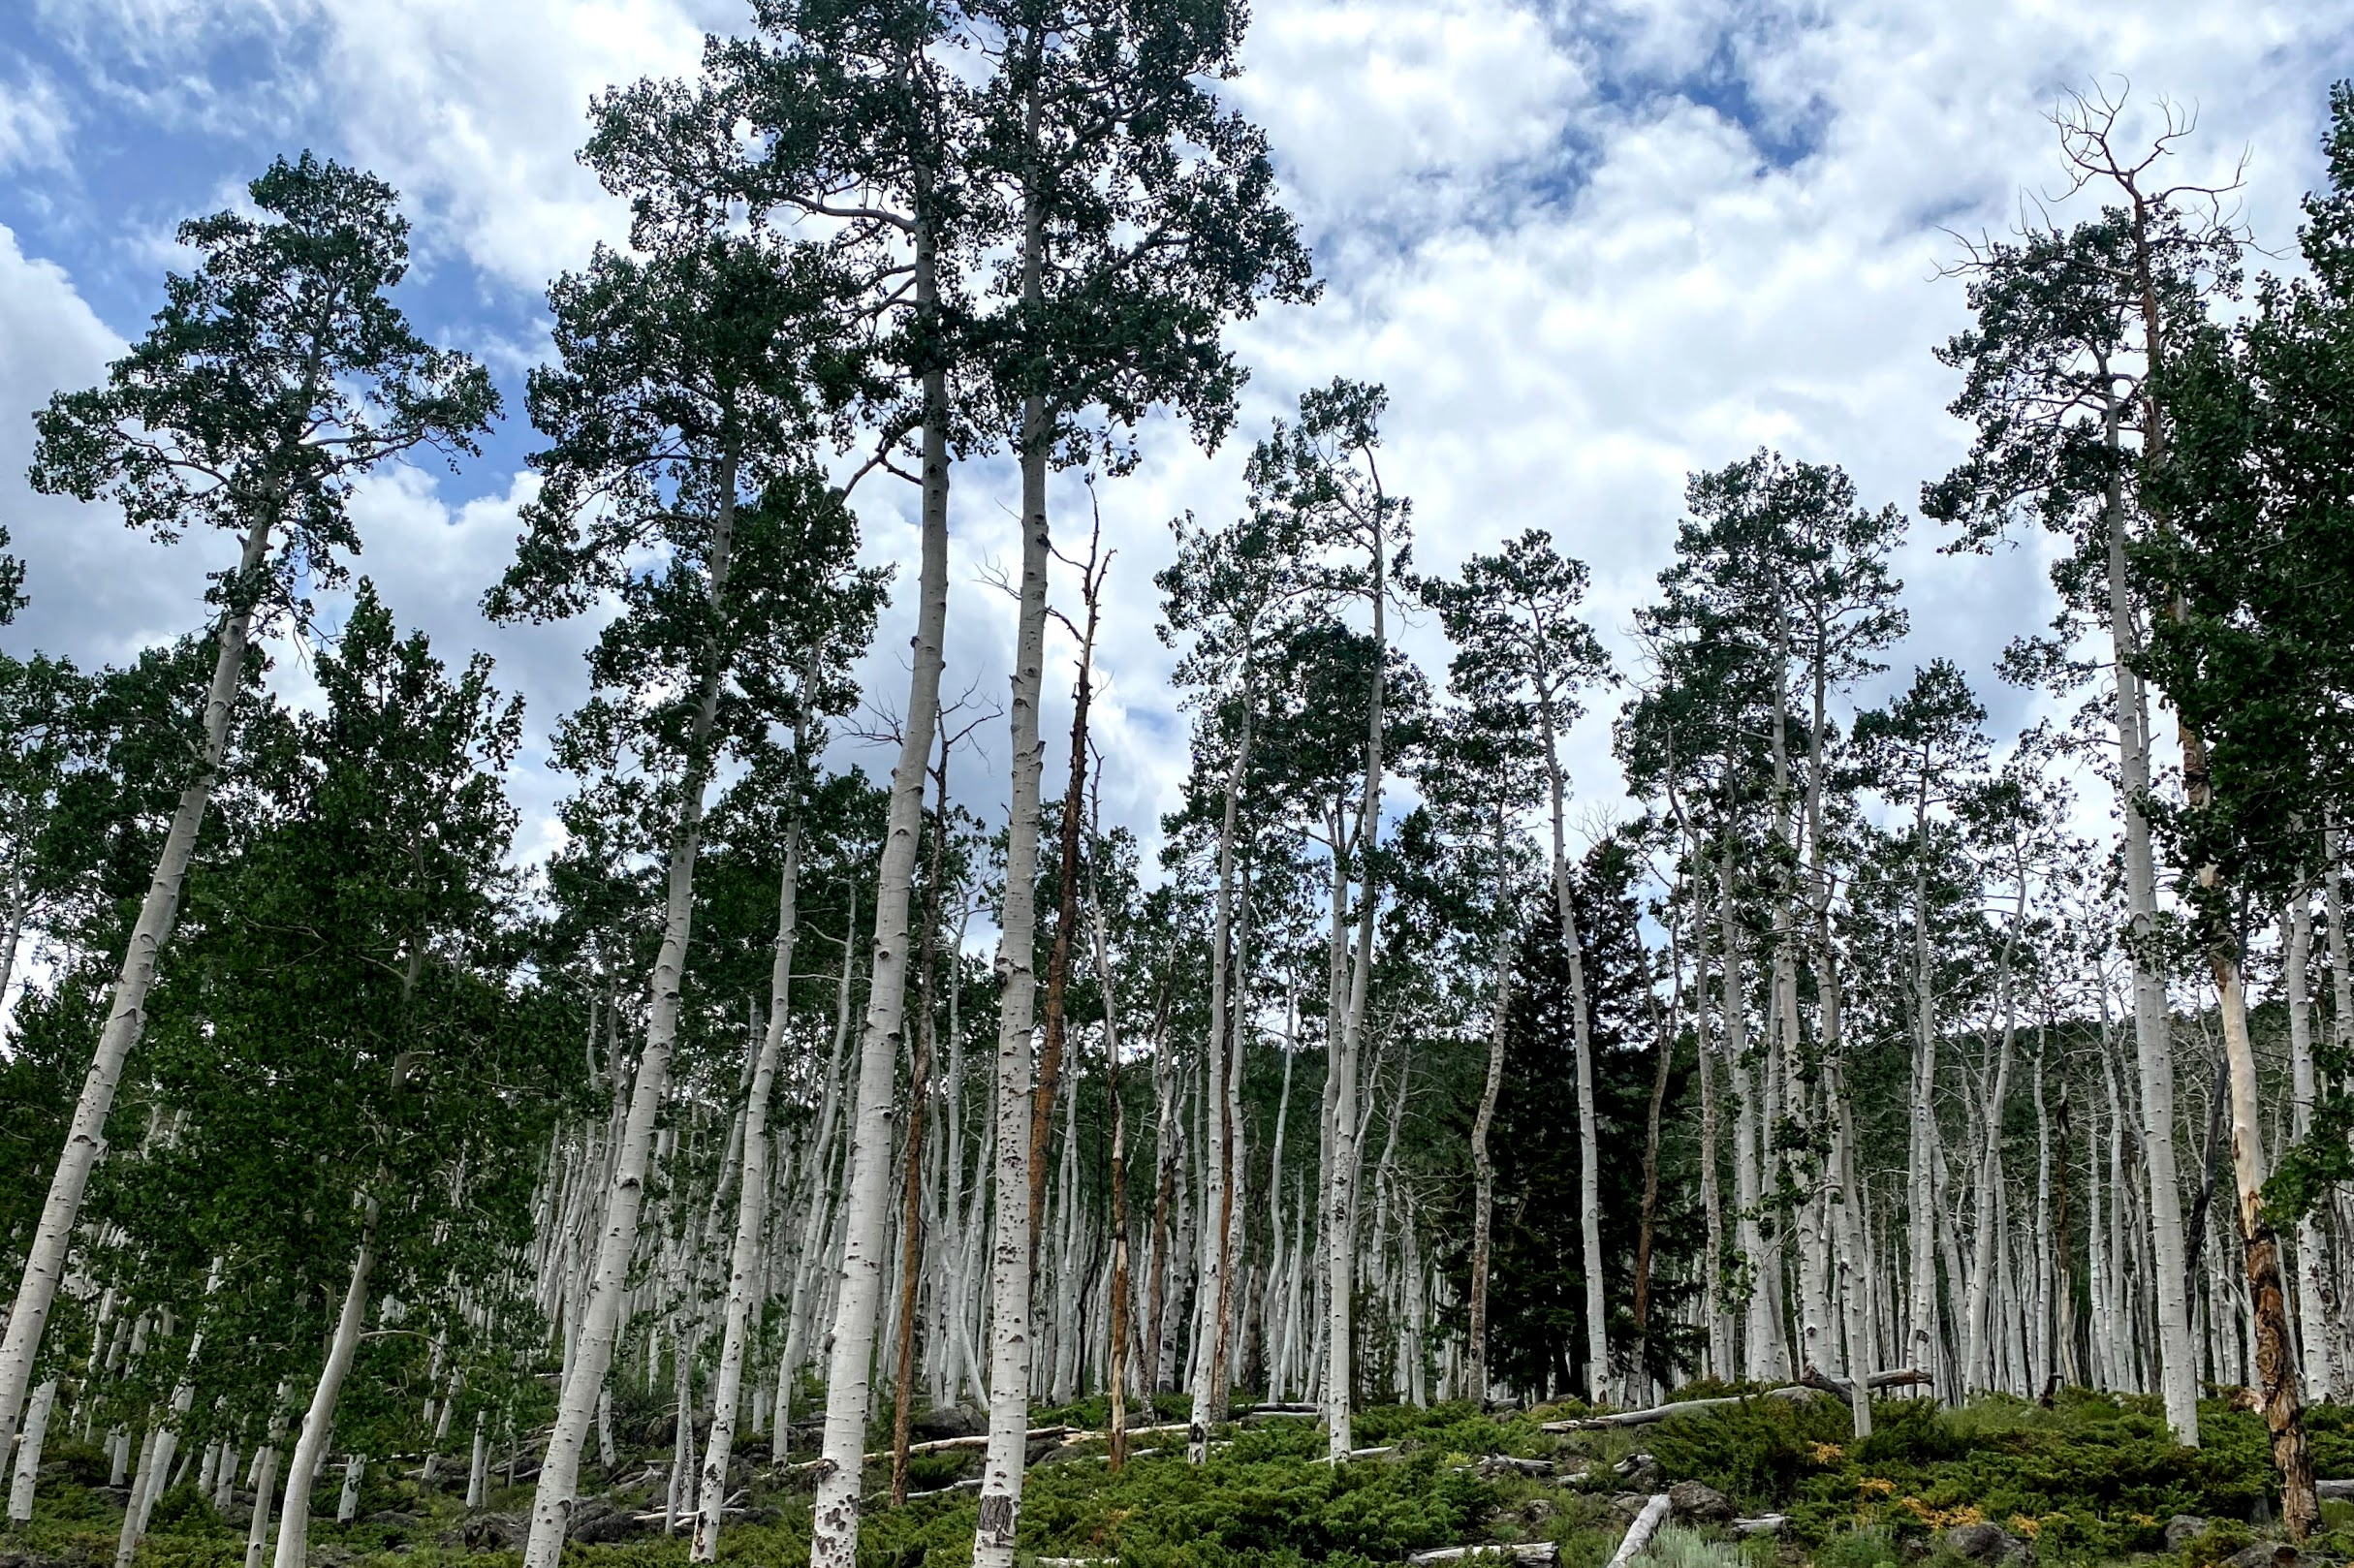 A portion of the 106-acre Pando Aspen Clone, revered as the largest-single living organism on Earth.